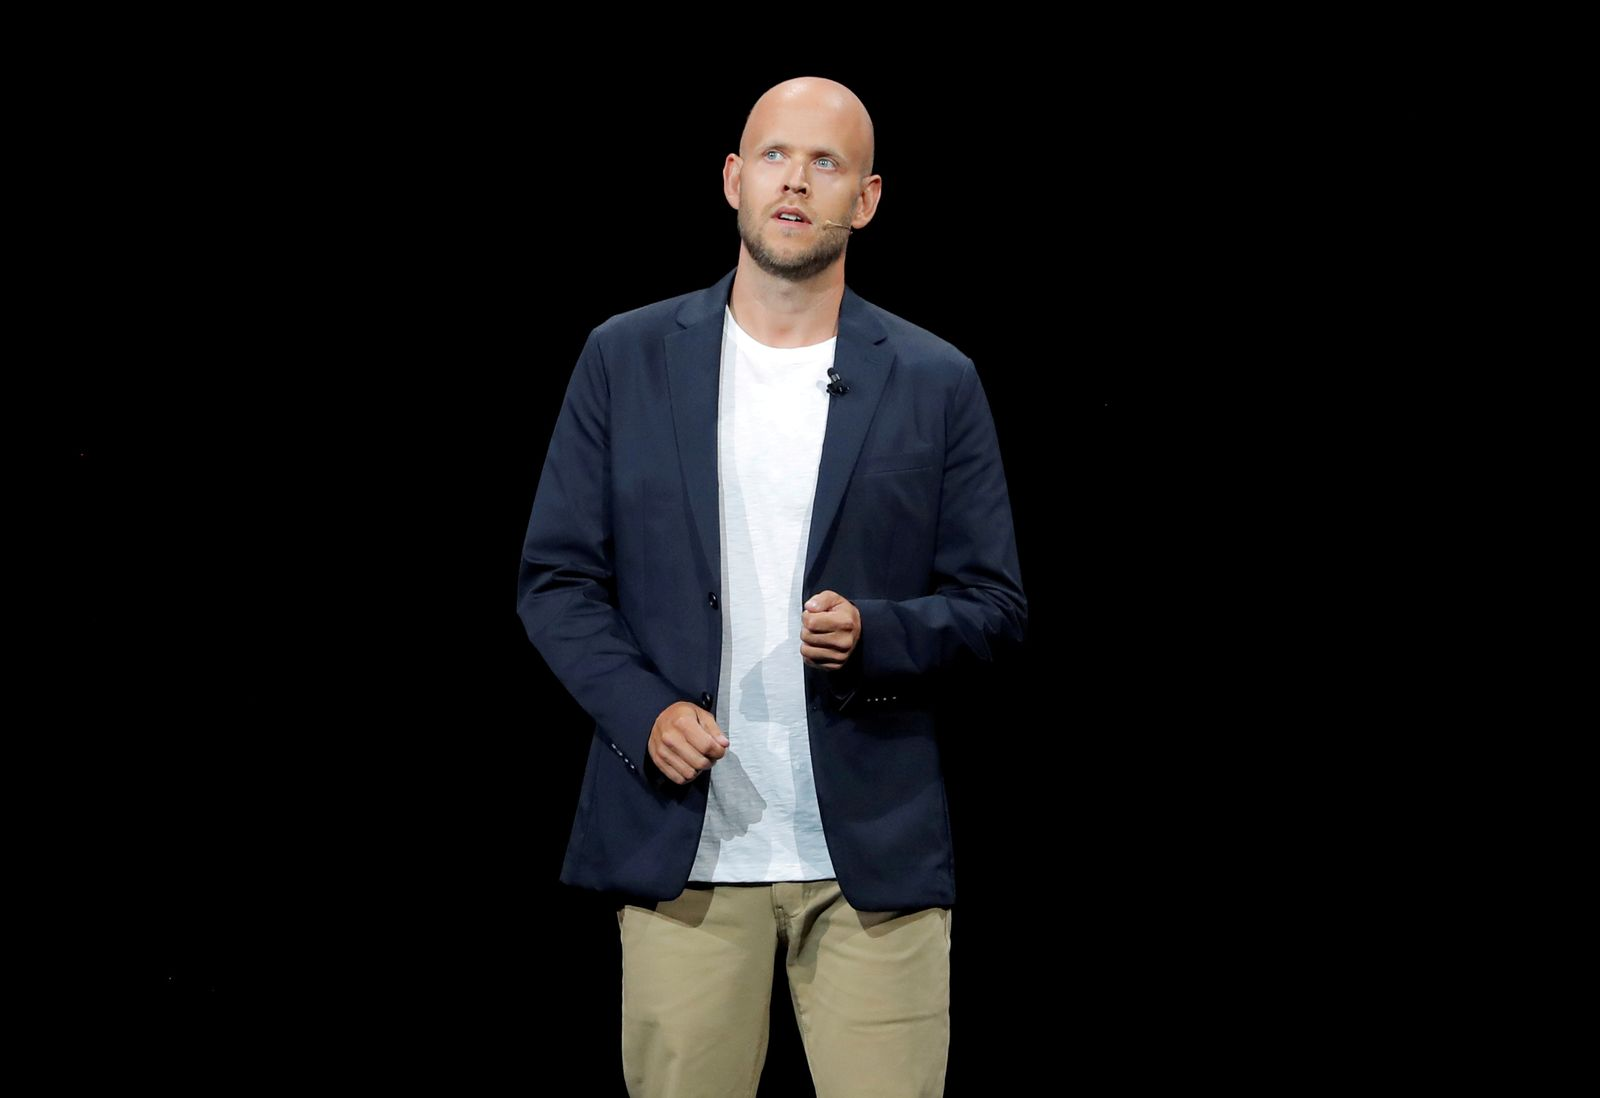 FILE PHOTO: Daniel Ek, CEO of Spotify speaks at a Samsung product launch event in Brooklyn